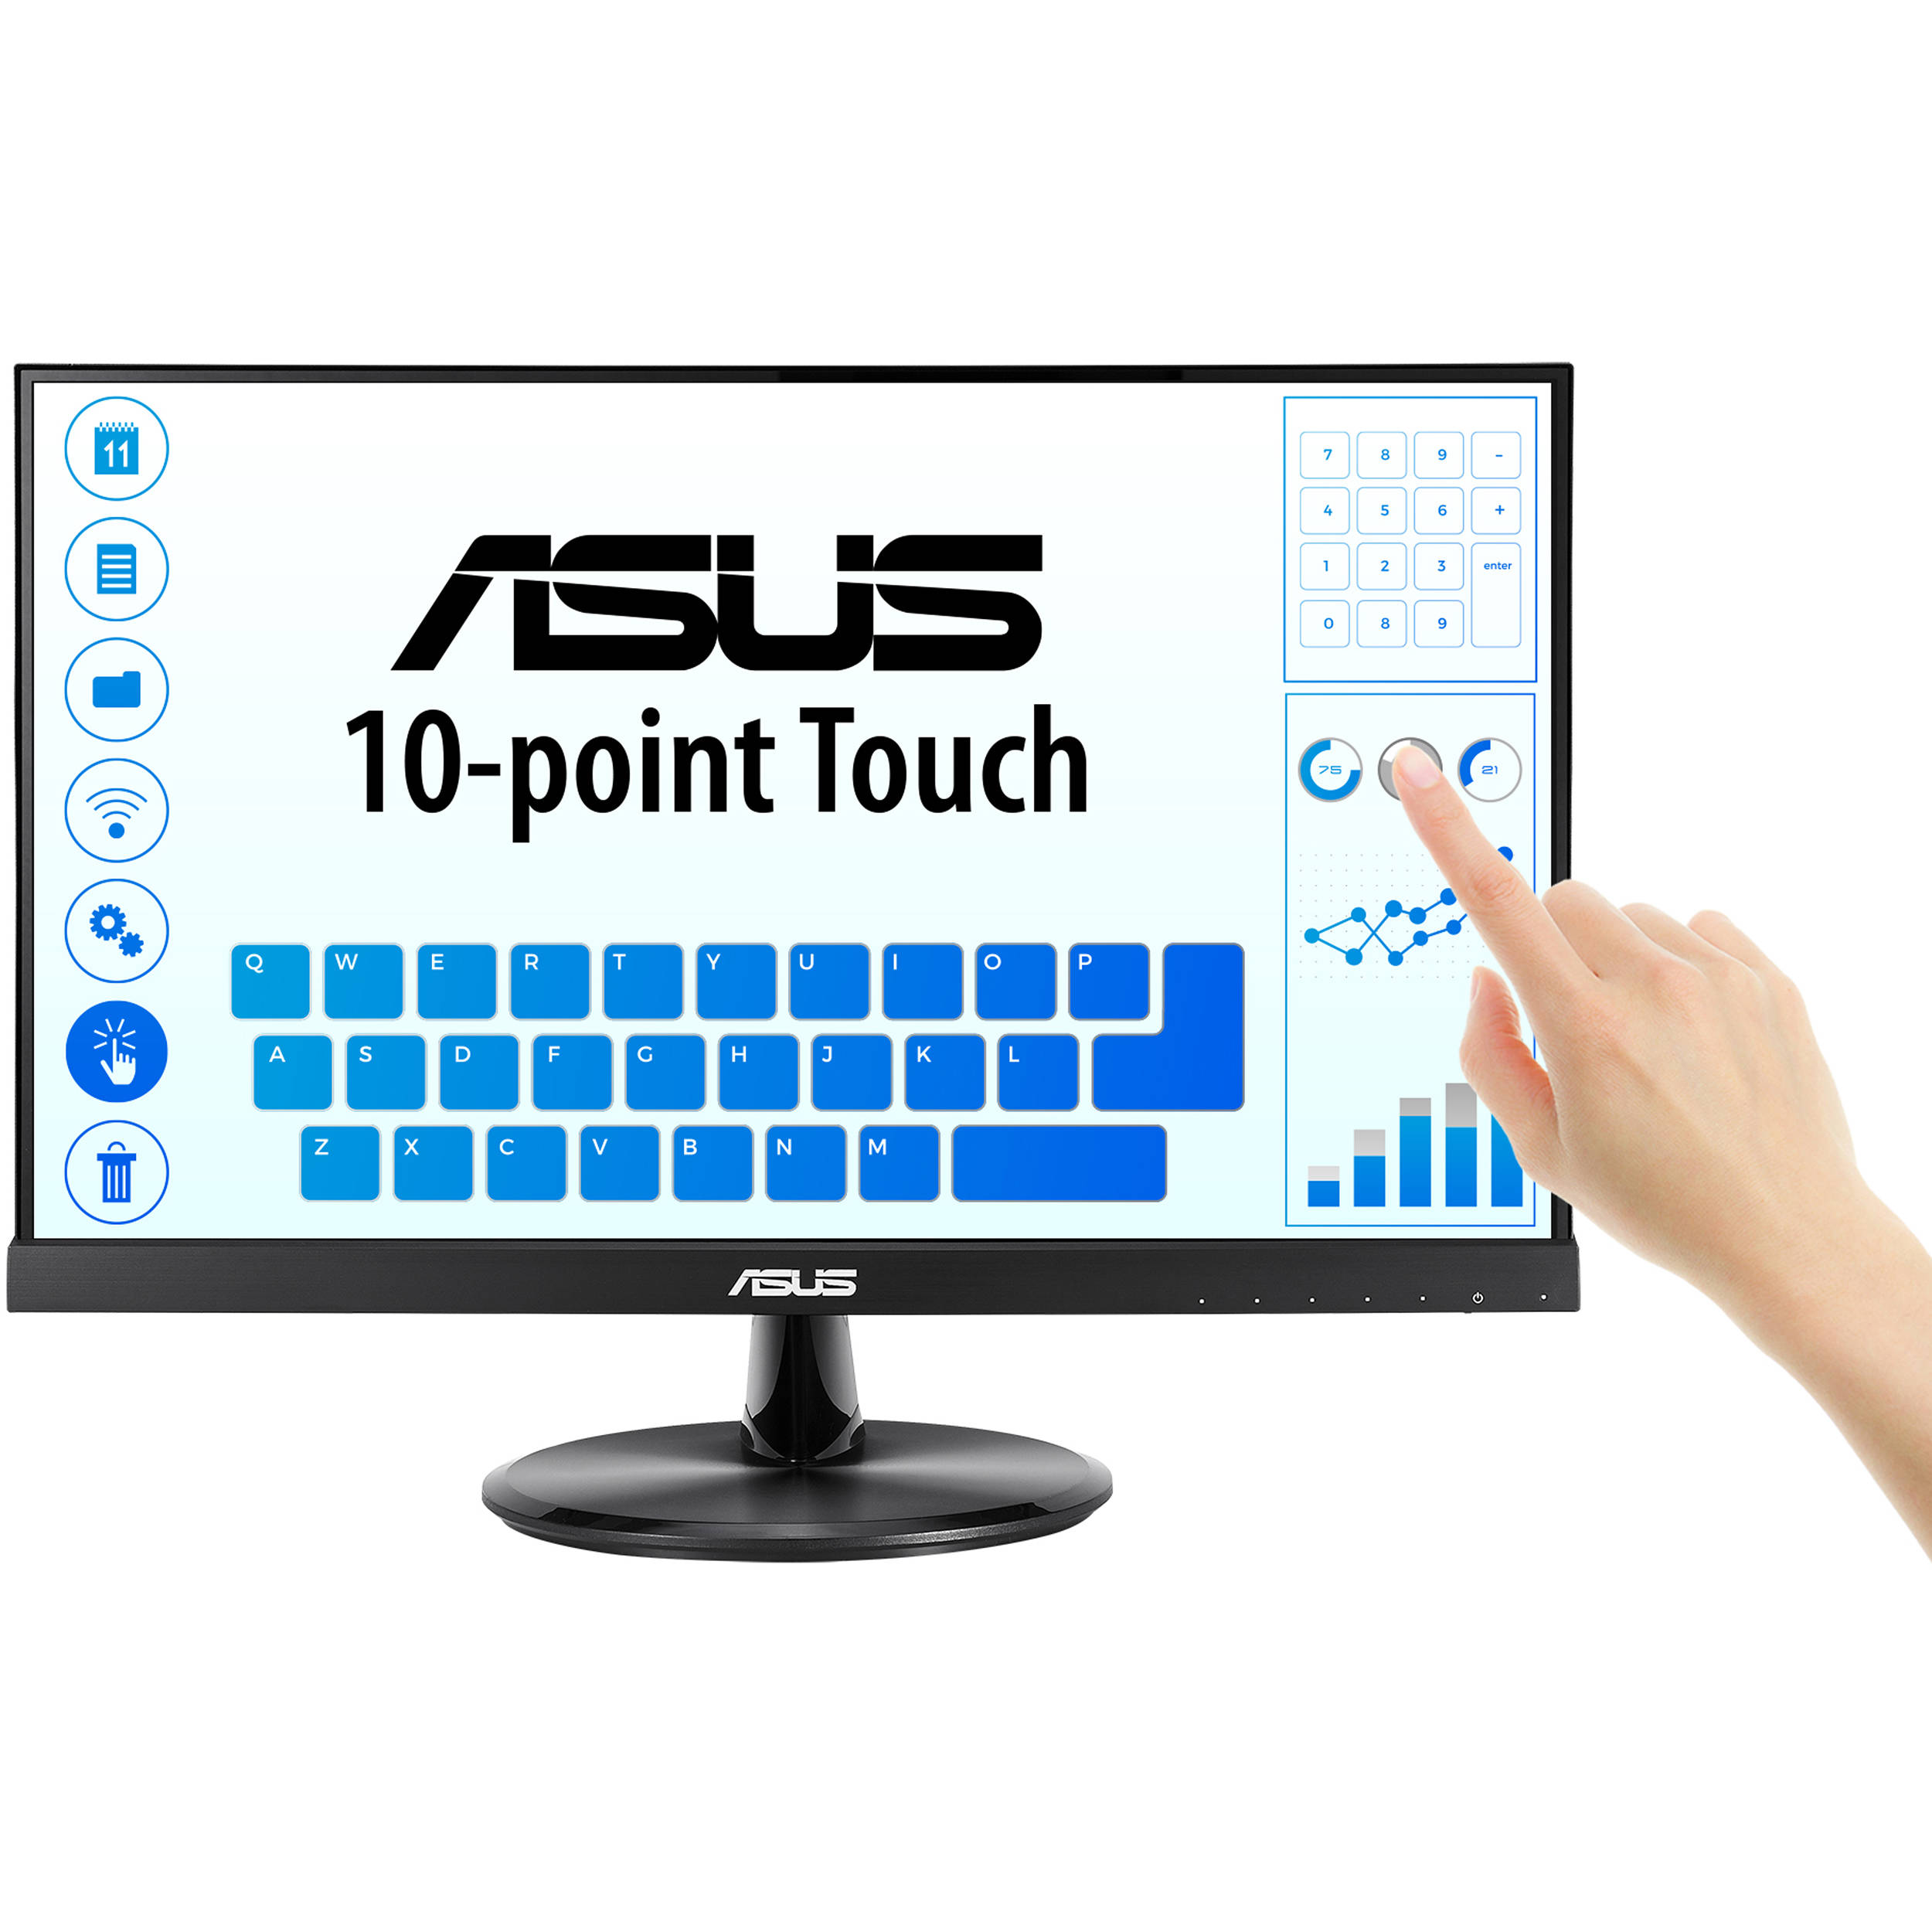 Monitor Touchscreen ASUS VT229H 21.5 inch 5 ms Black